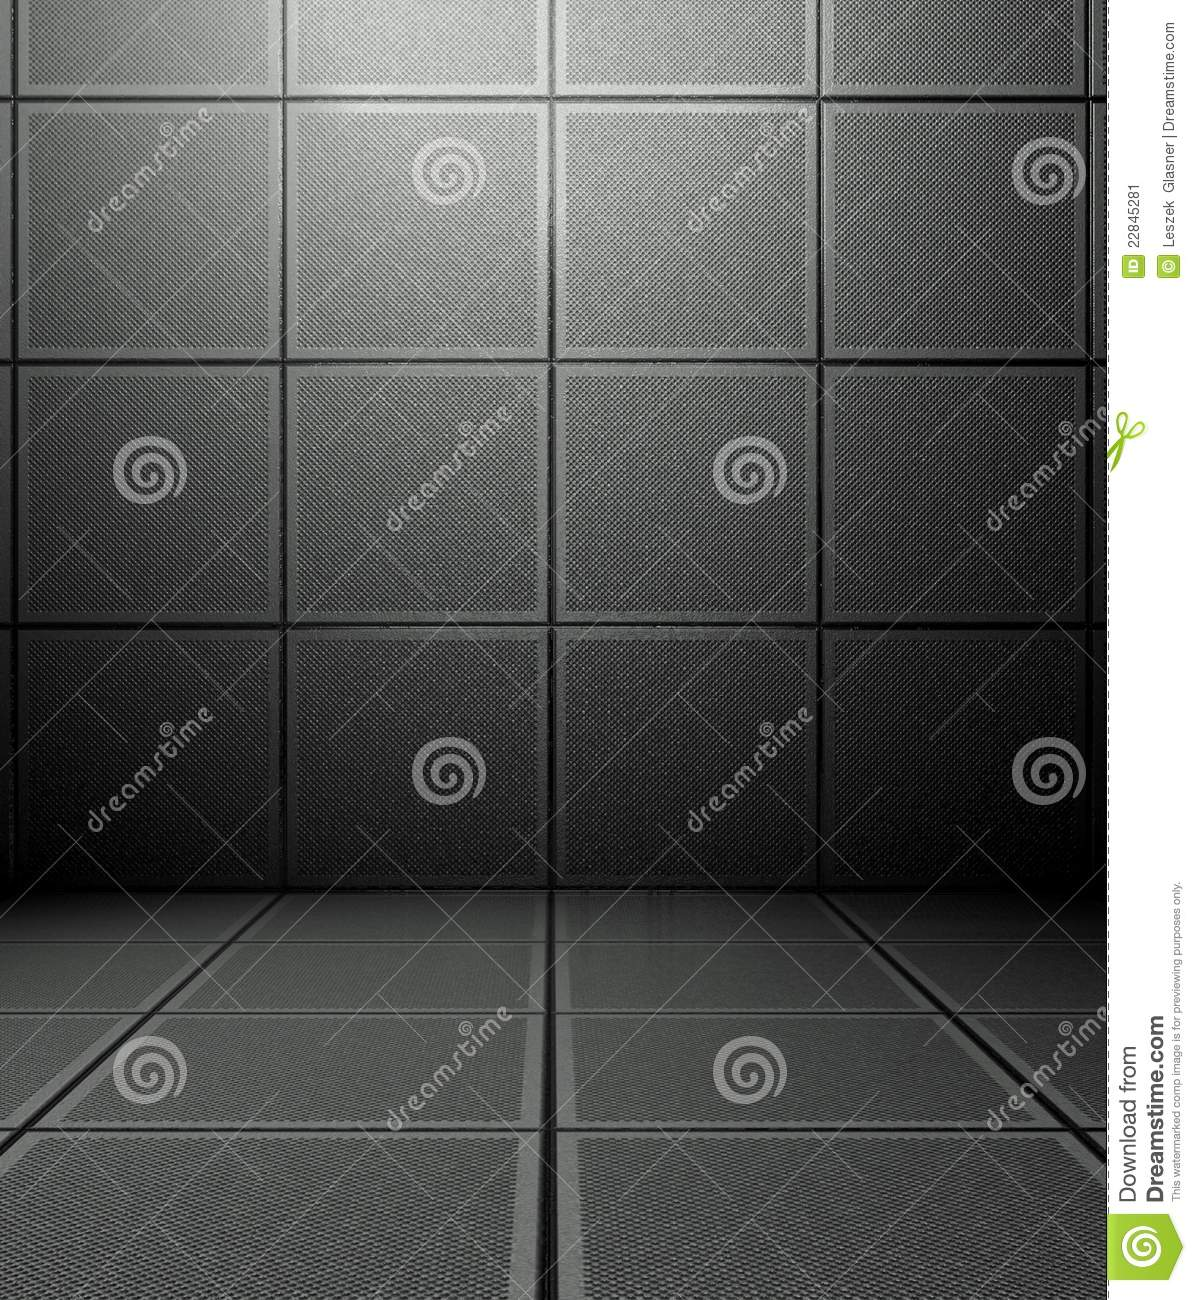 3d concrete or metal tiles stock image image 22845281 for 3d concrete tiles